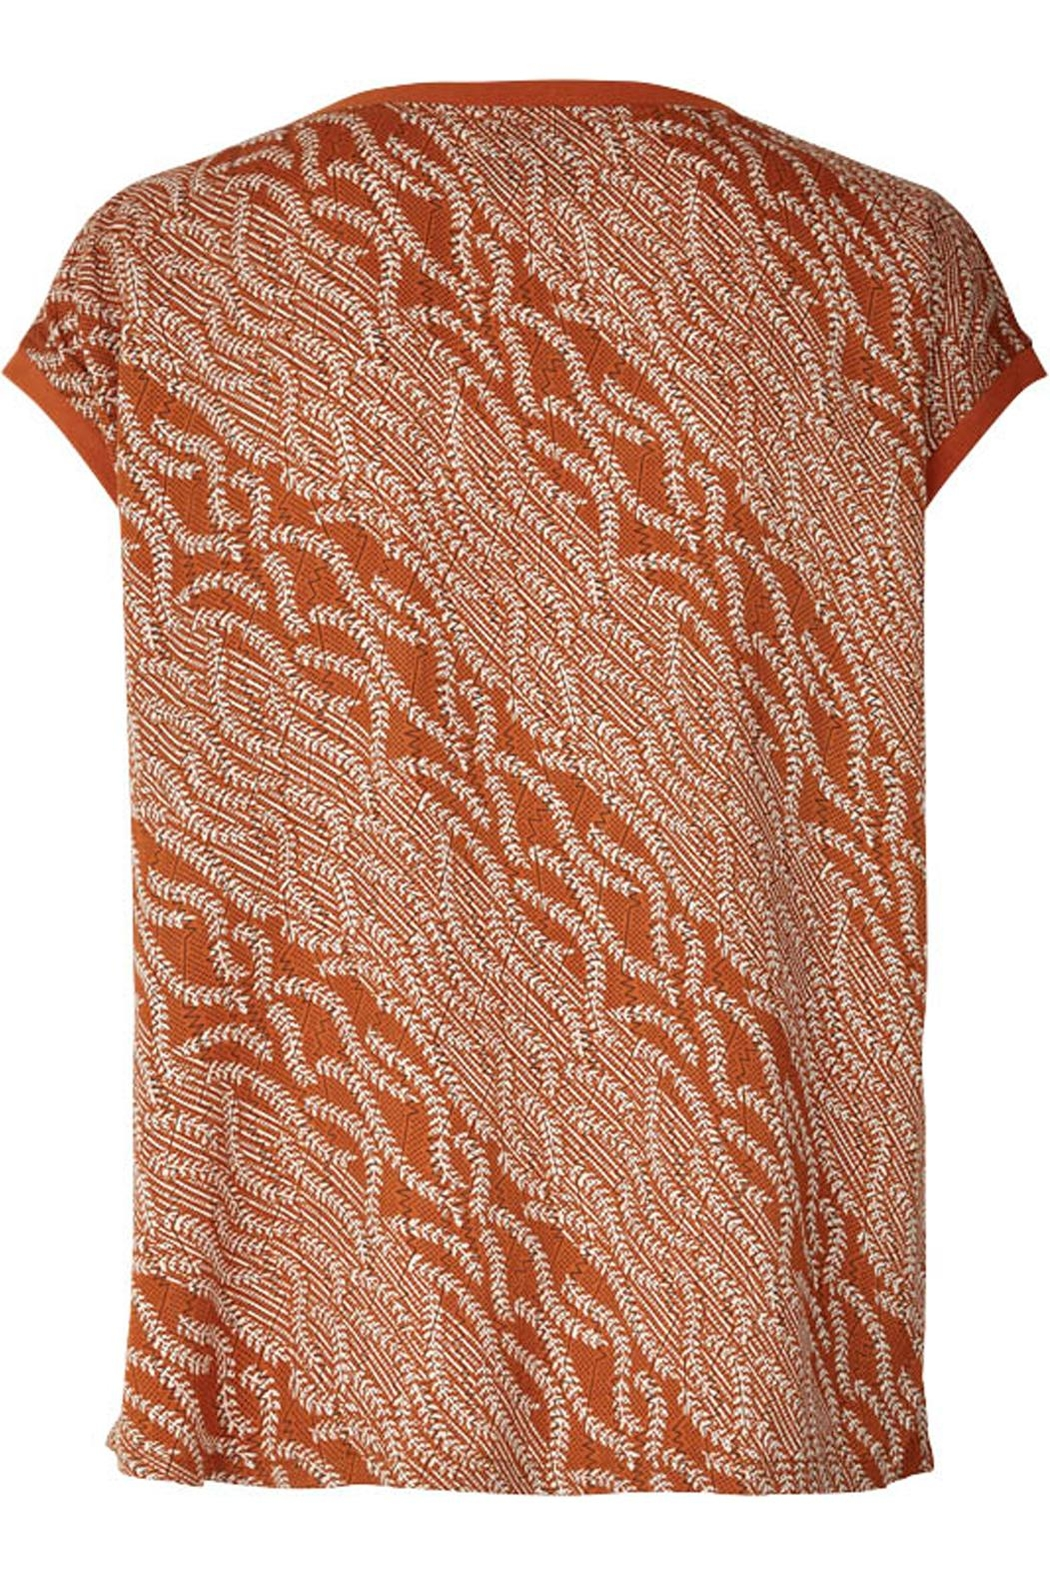 LOLLYS LAUNDRY Rust Colored Top - Front Full Image